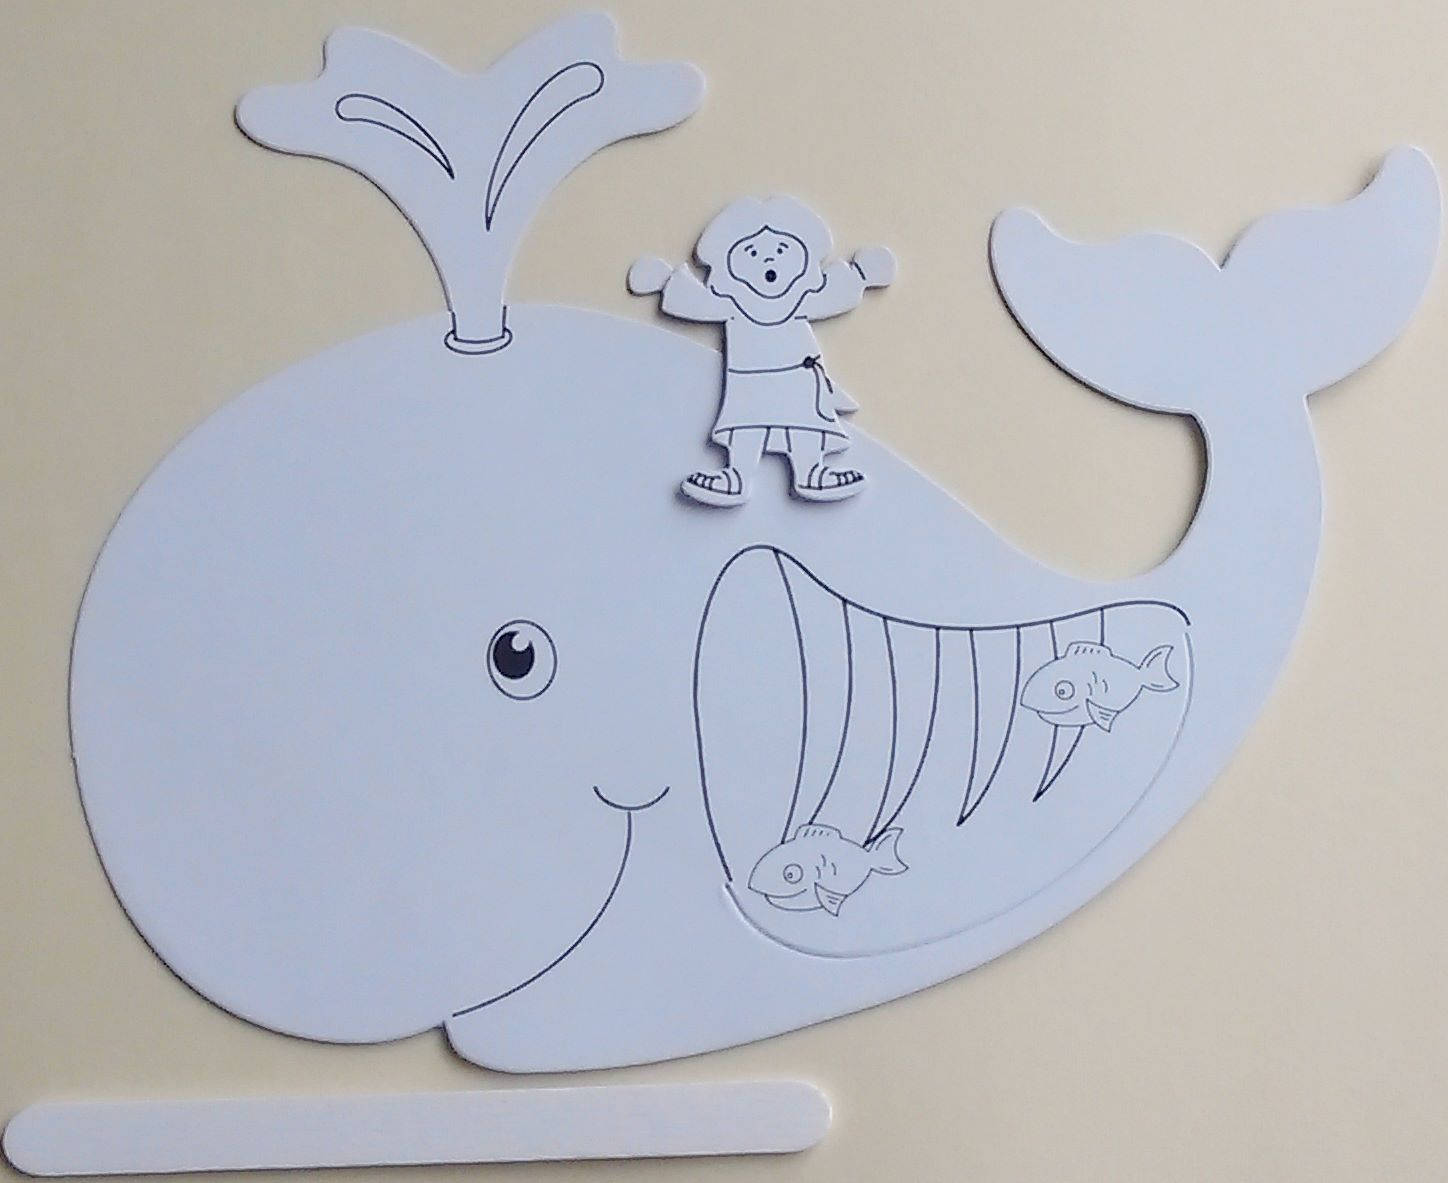 Petersham Bible Book Amp Tract Depot Colour Your Own Jonah And The Whale Craft Kit